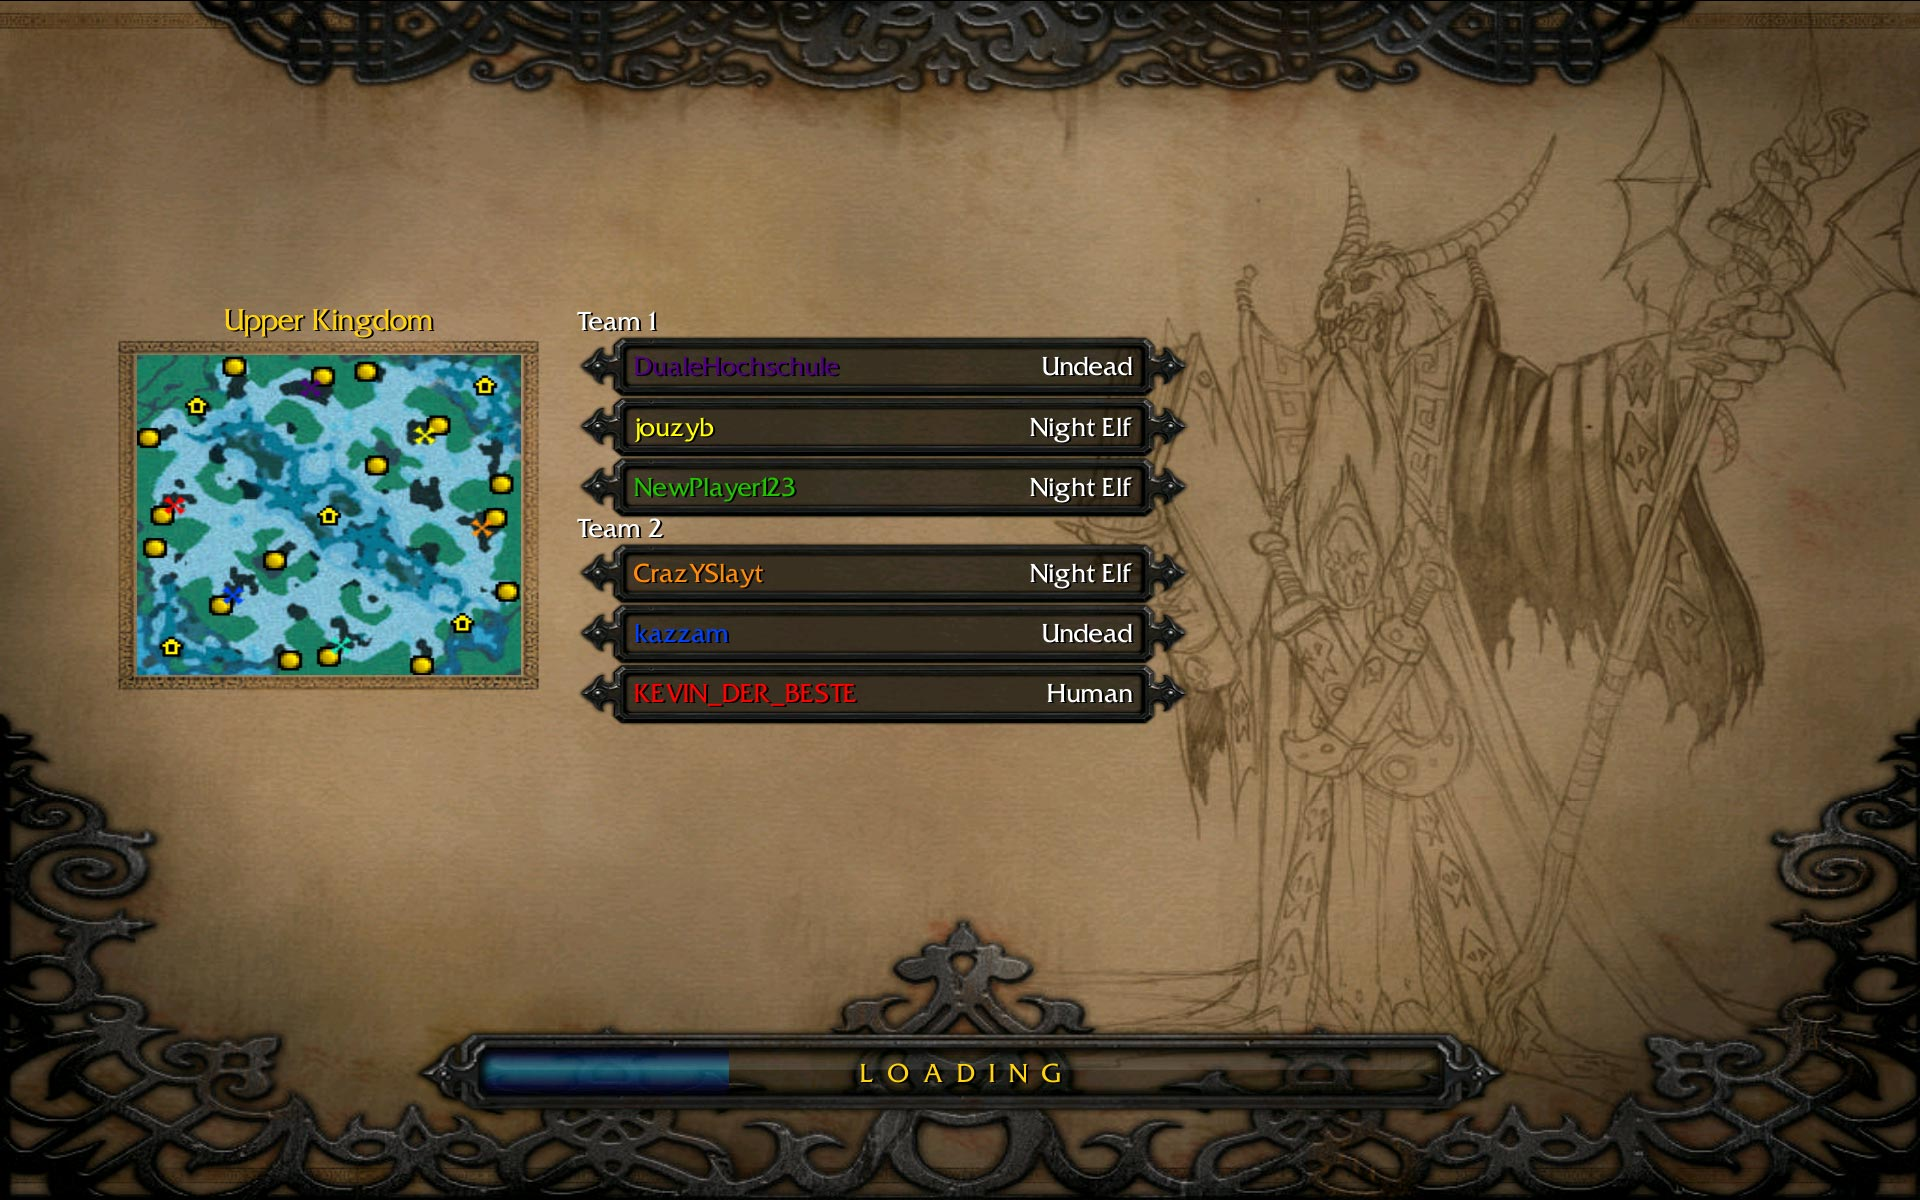 warcraft-3-screenshot-loading-newplayer123